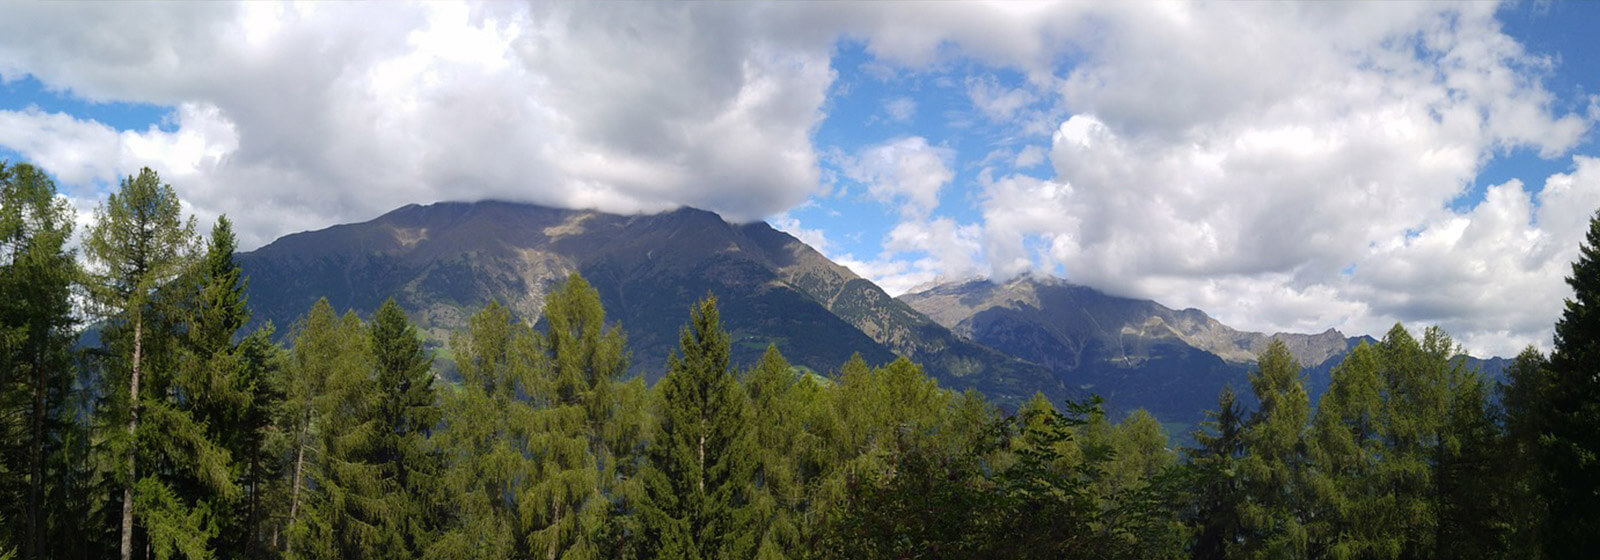 Mountains image slide